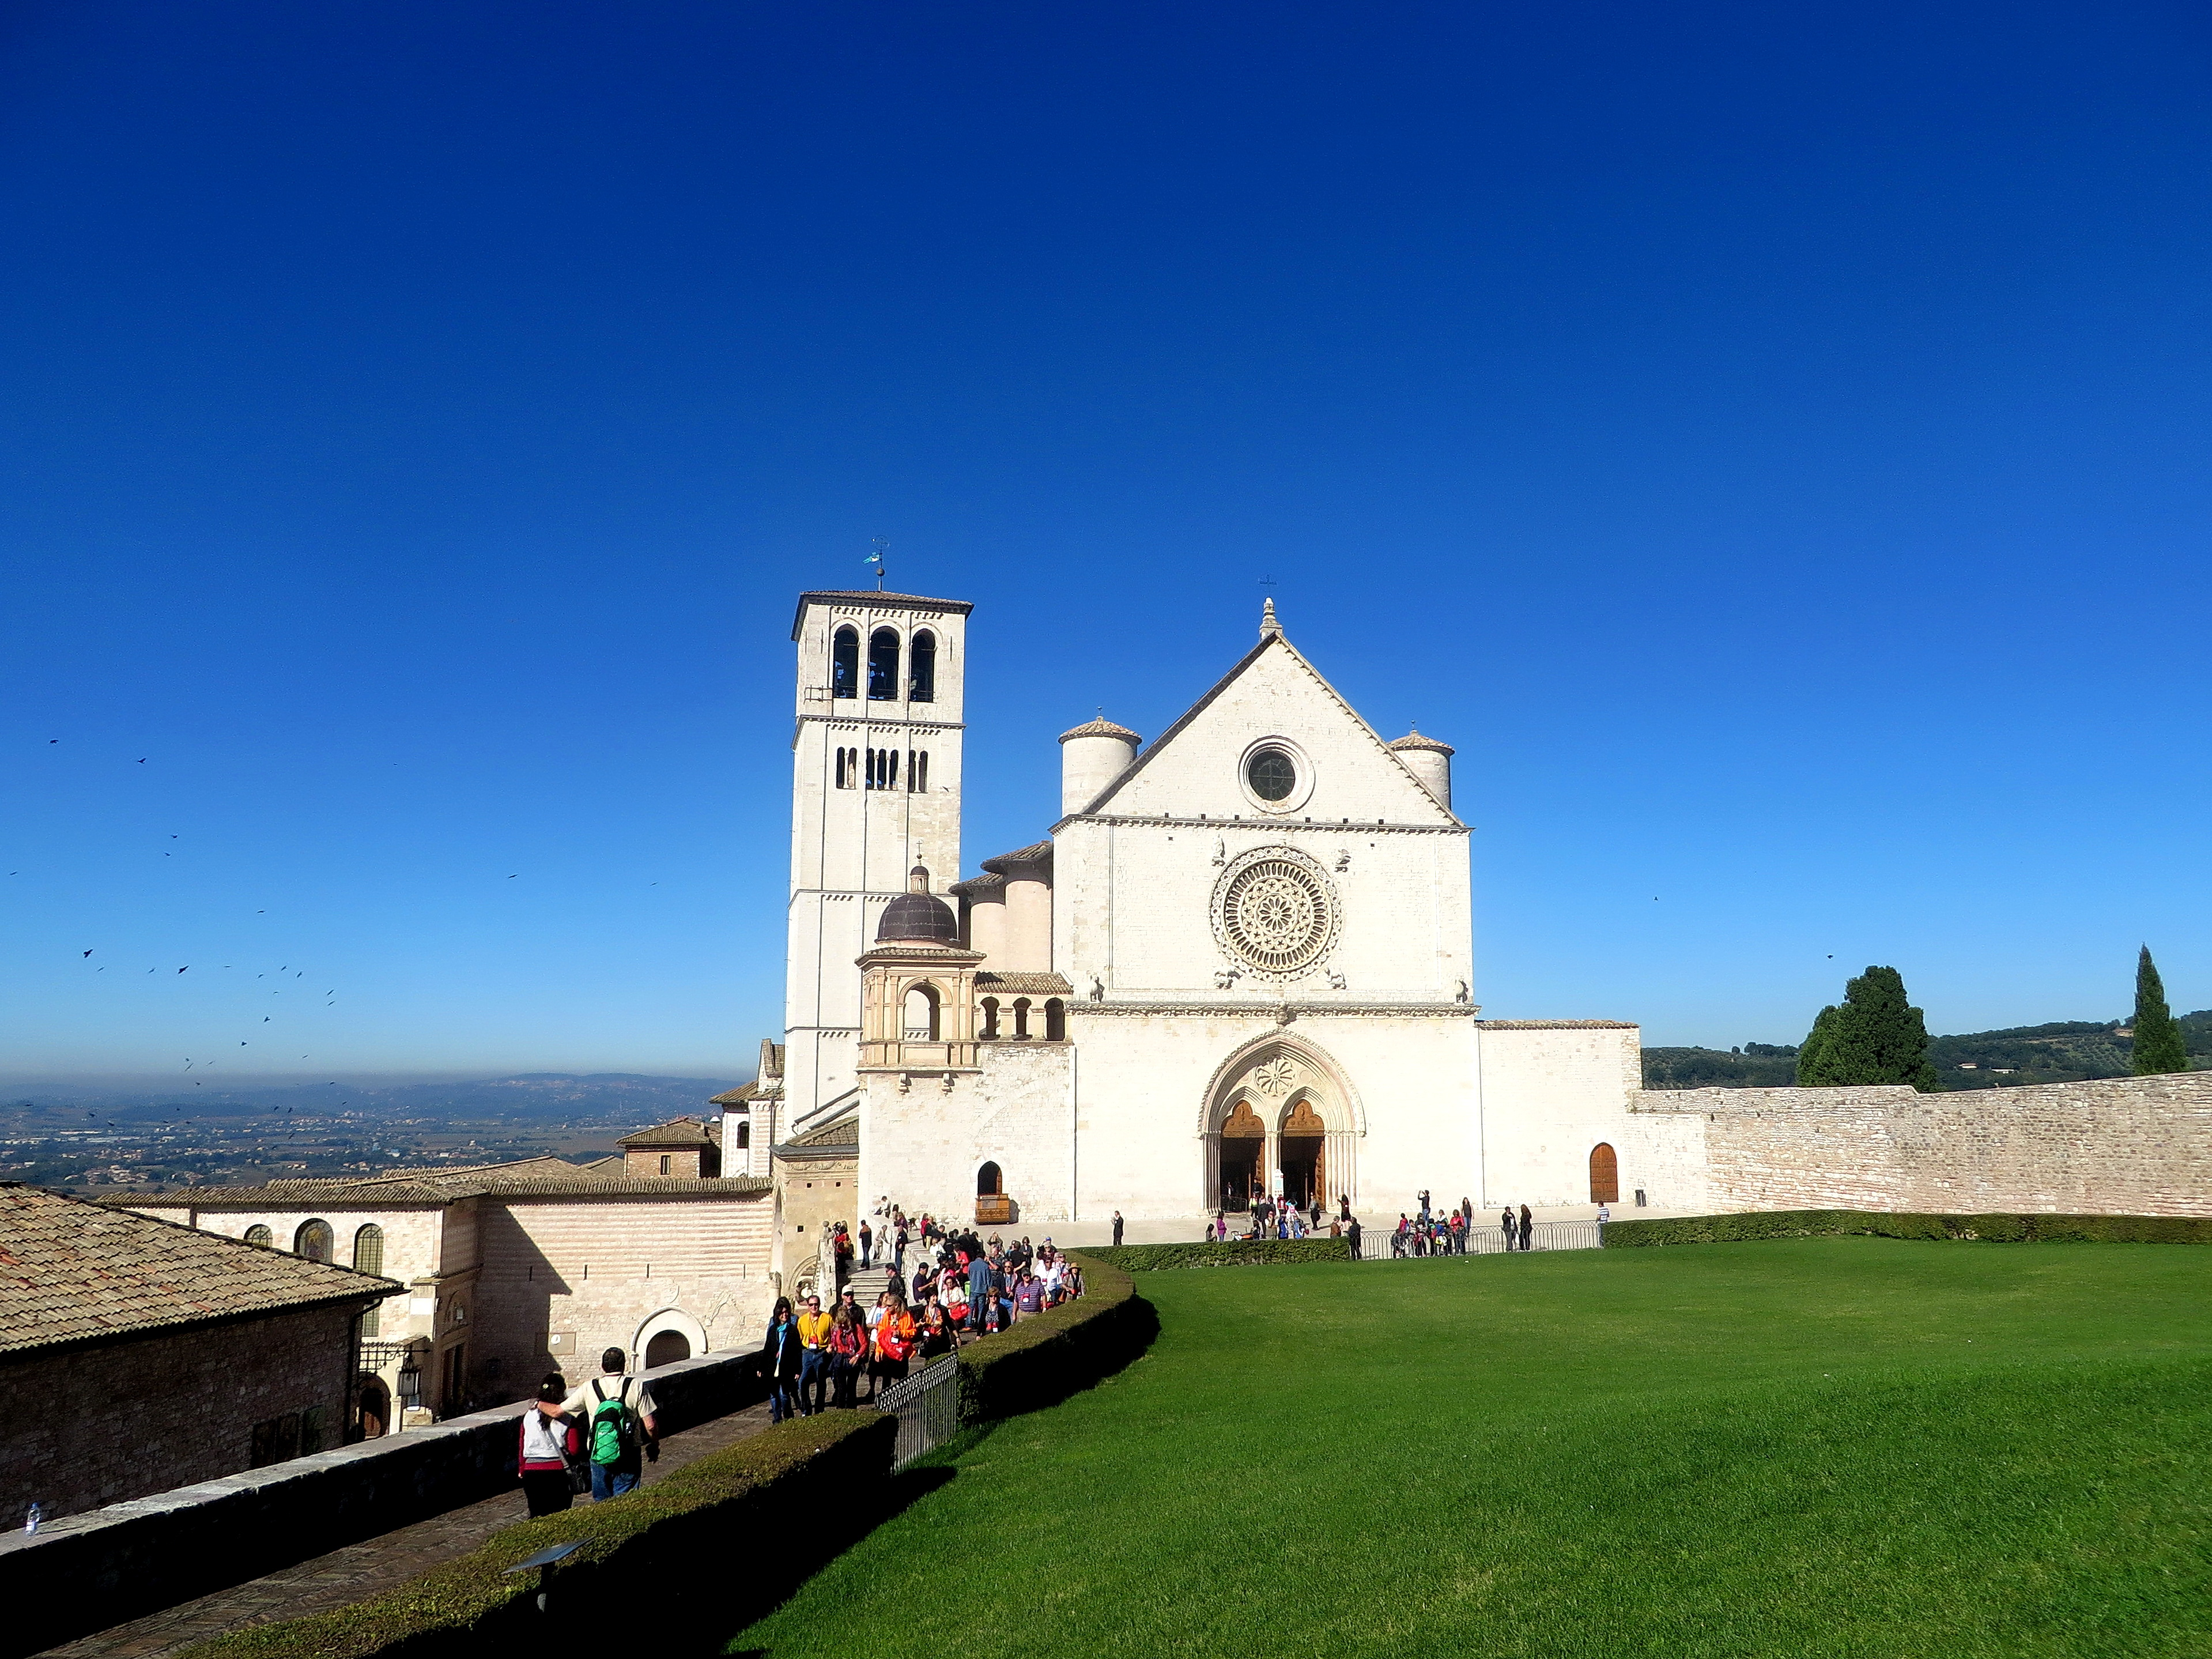 50 St Francis Basilica in Assisi